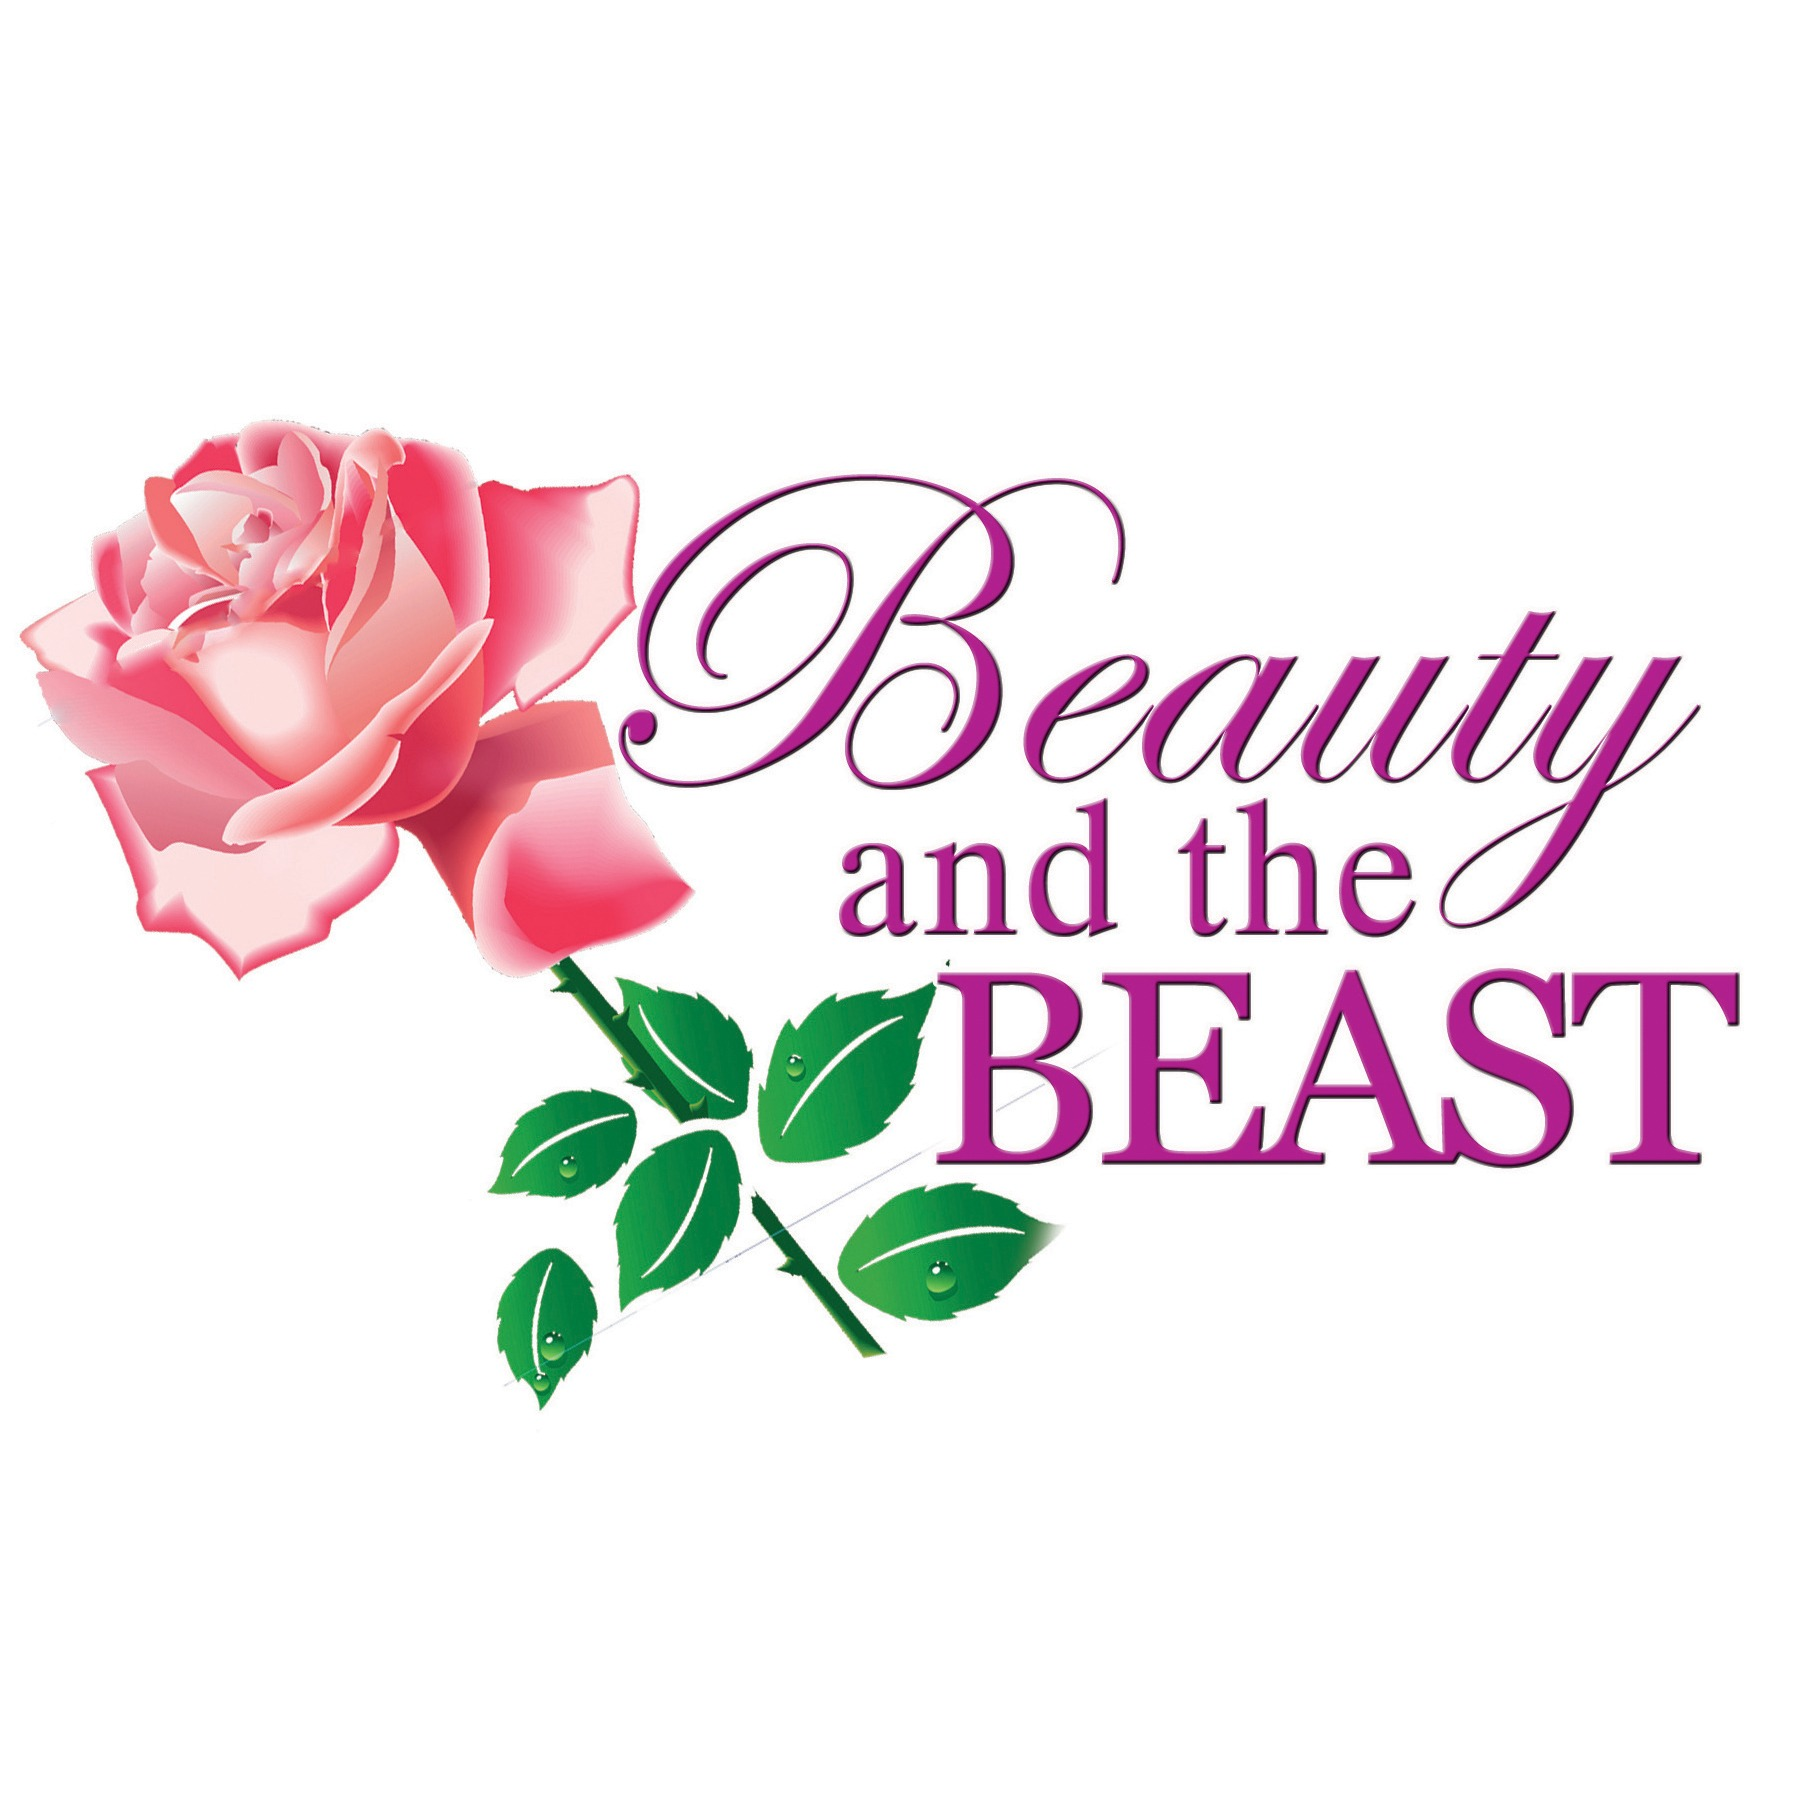 75+ Beauty And The Beast Dialogue